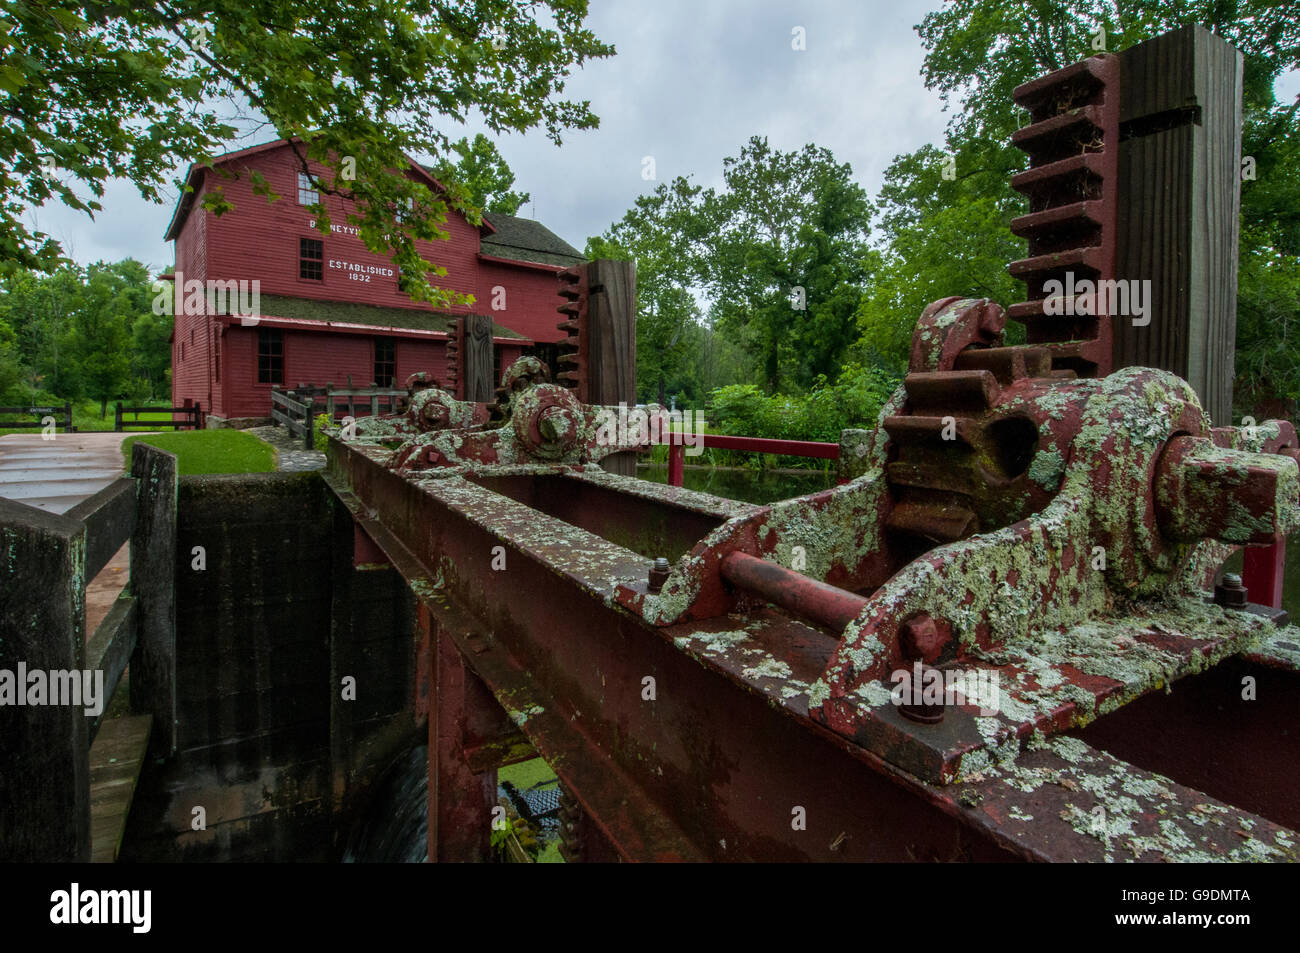 The gears and machinery to raise and lower water level at a grist mill. - Stock Image